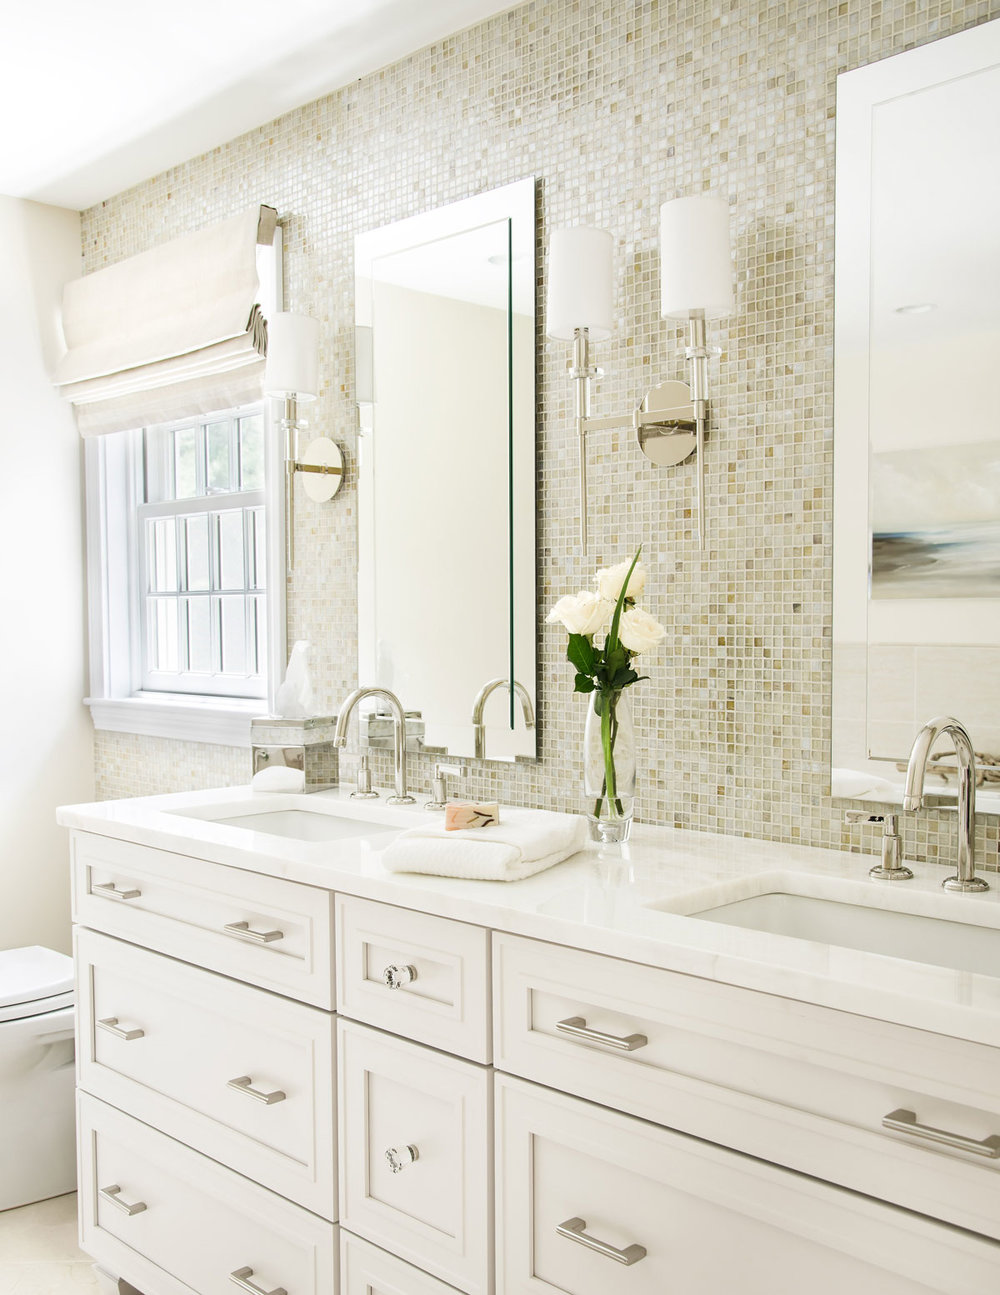 Norwell, MA bathroom design by Susan Curtis Interiors